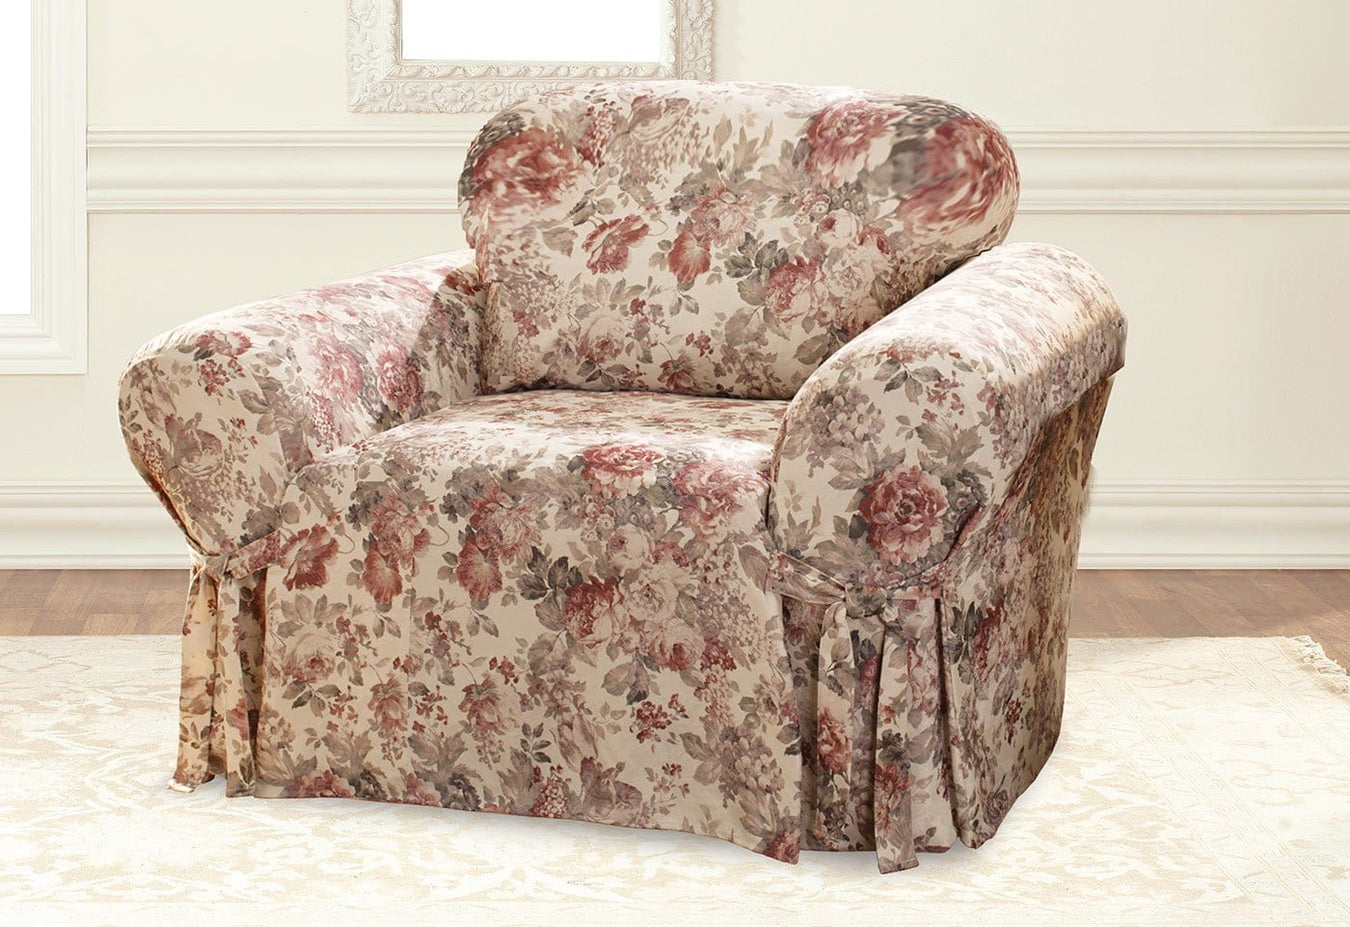 Chloe One Piece Chair Slipcover